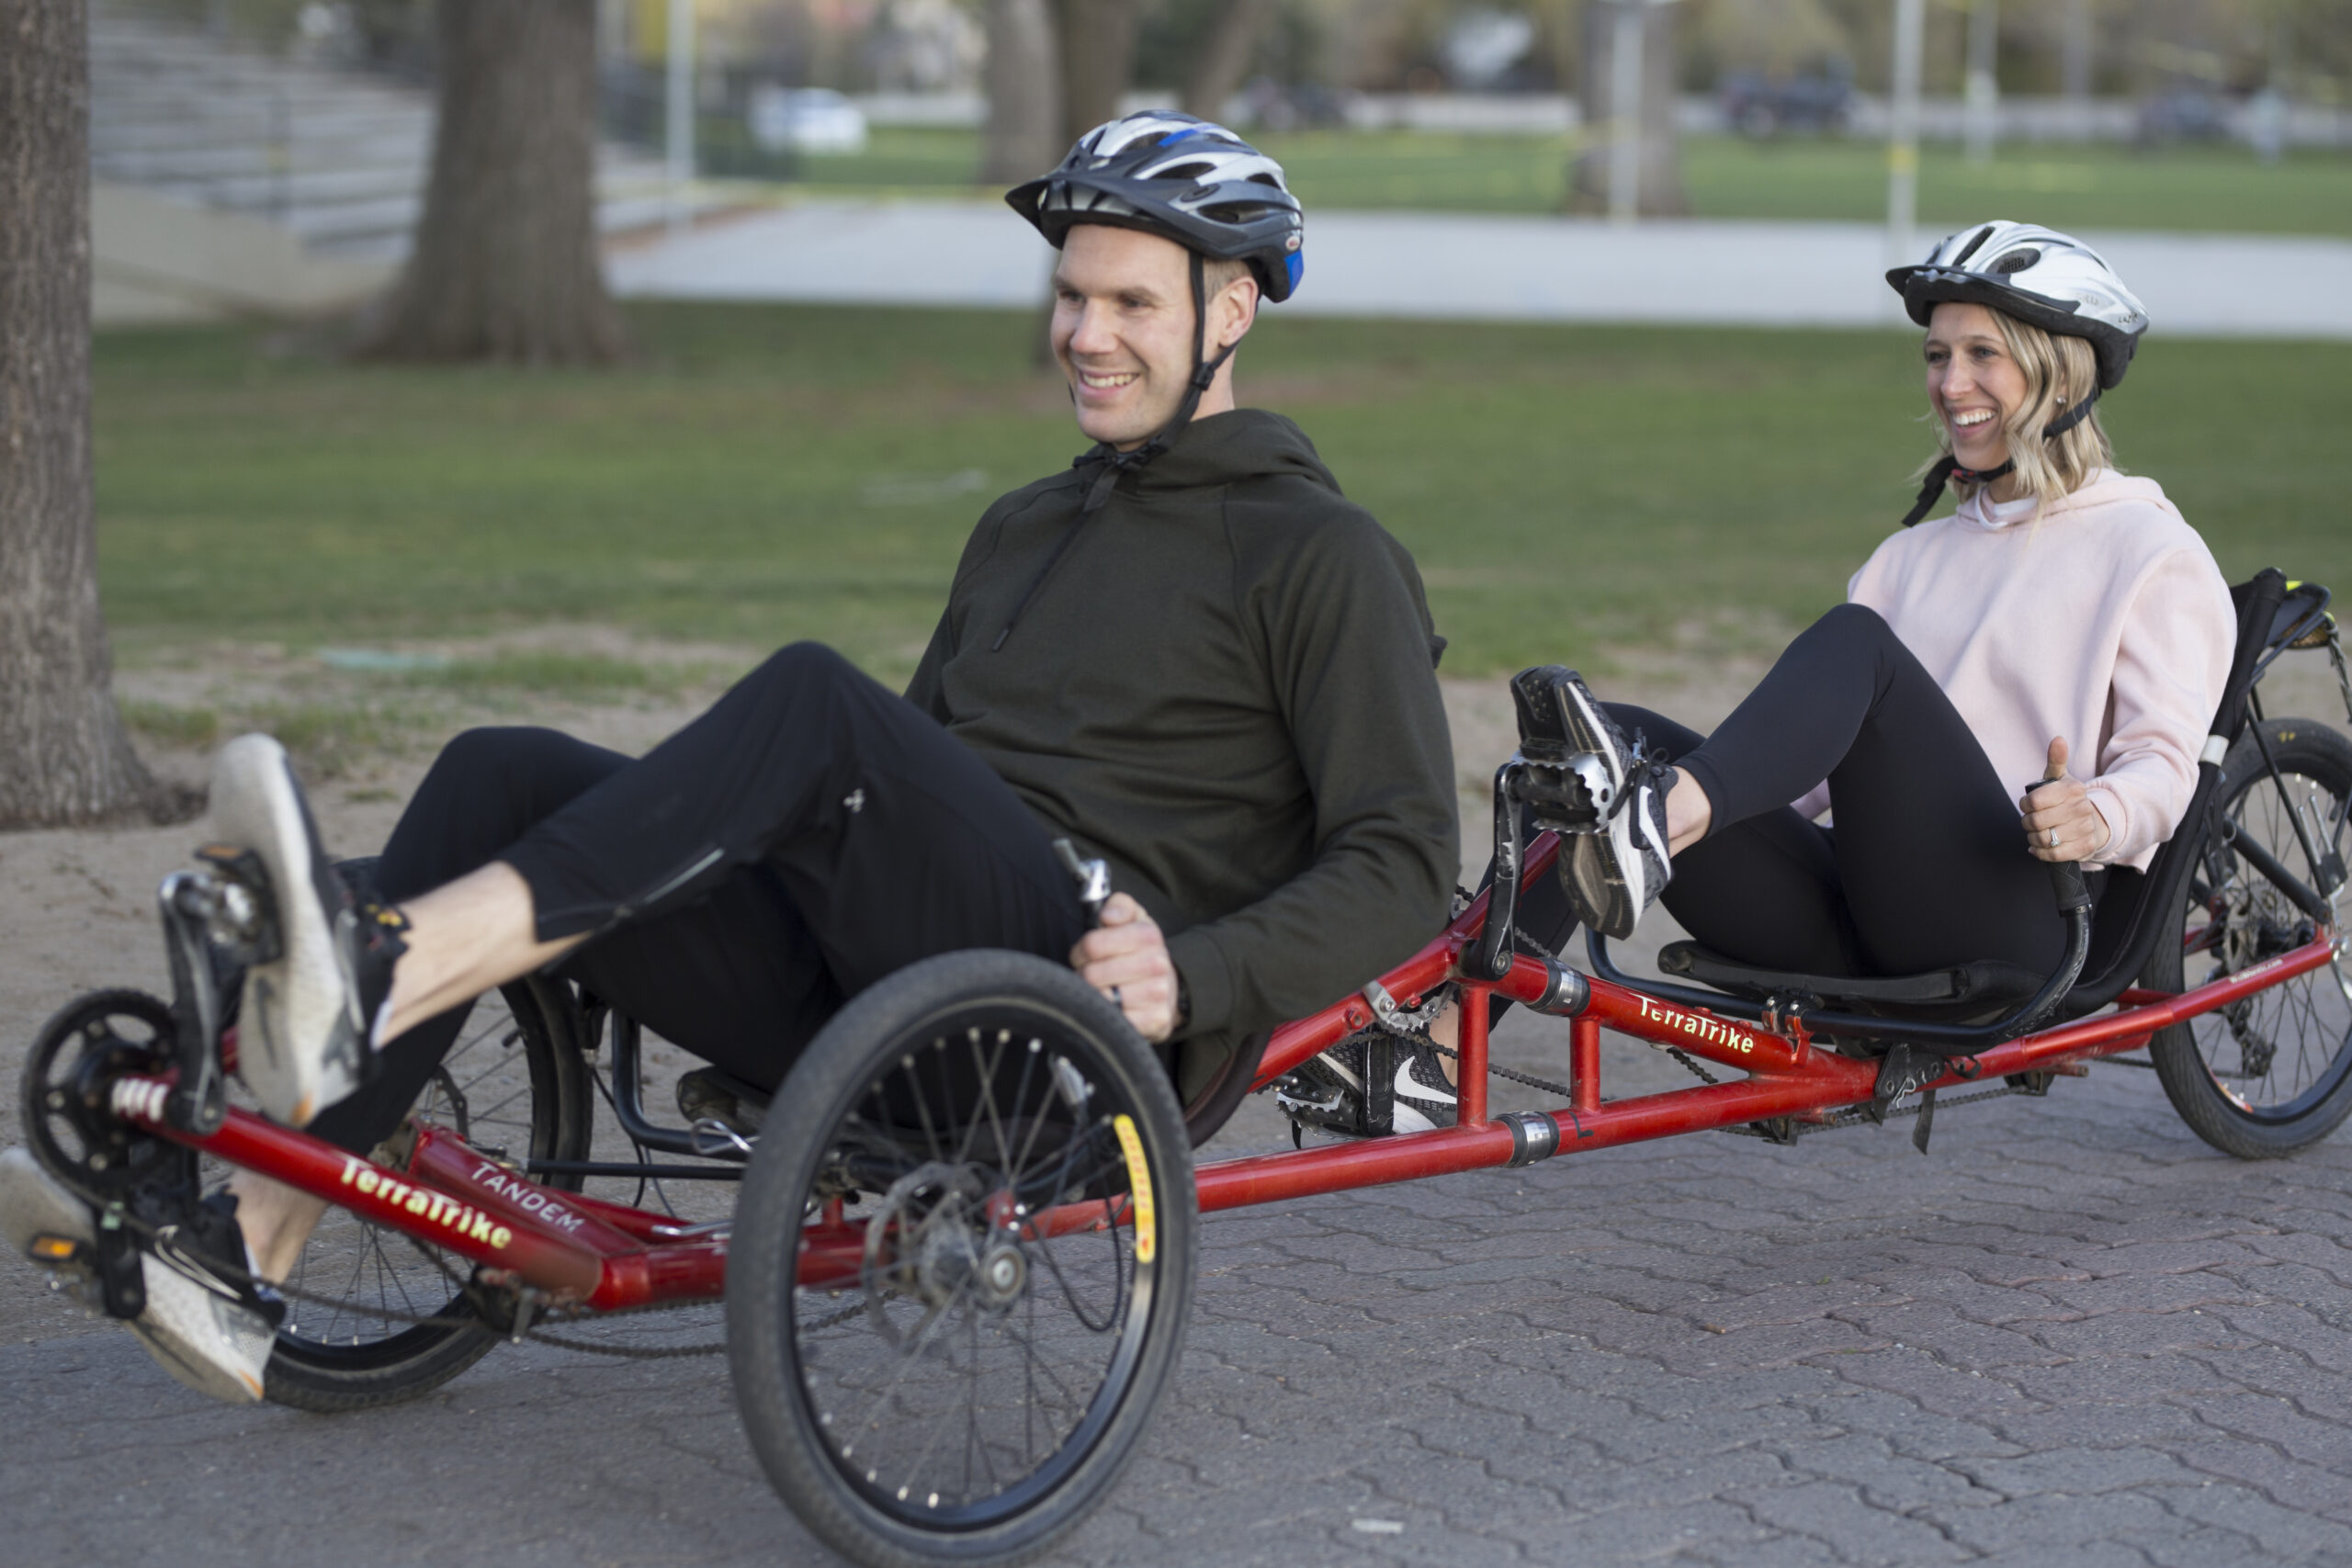 A man (in front) and a woman (behind) riding a red tandem recumbent cycle